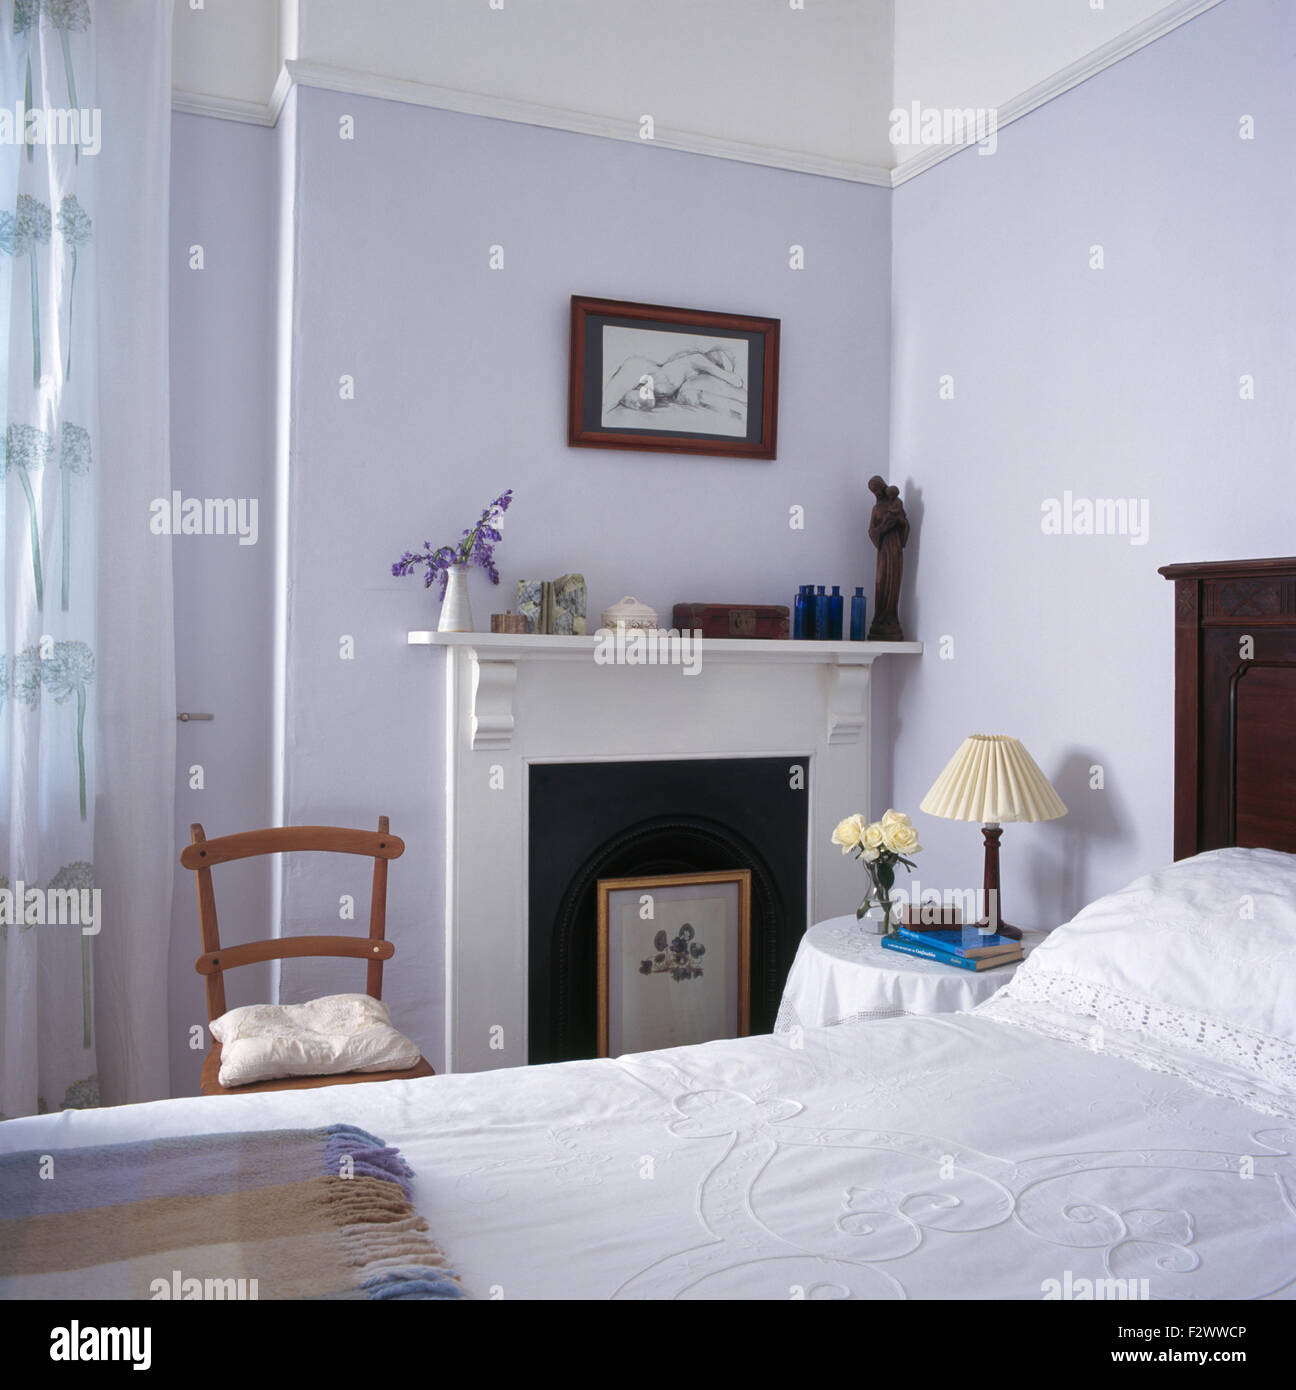 Mauve Bedroom Framed Drawing Above Fireplace With Firescreen In Small Mauve